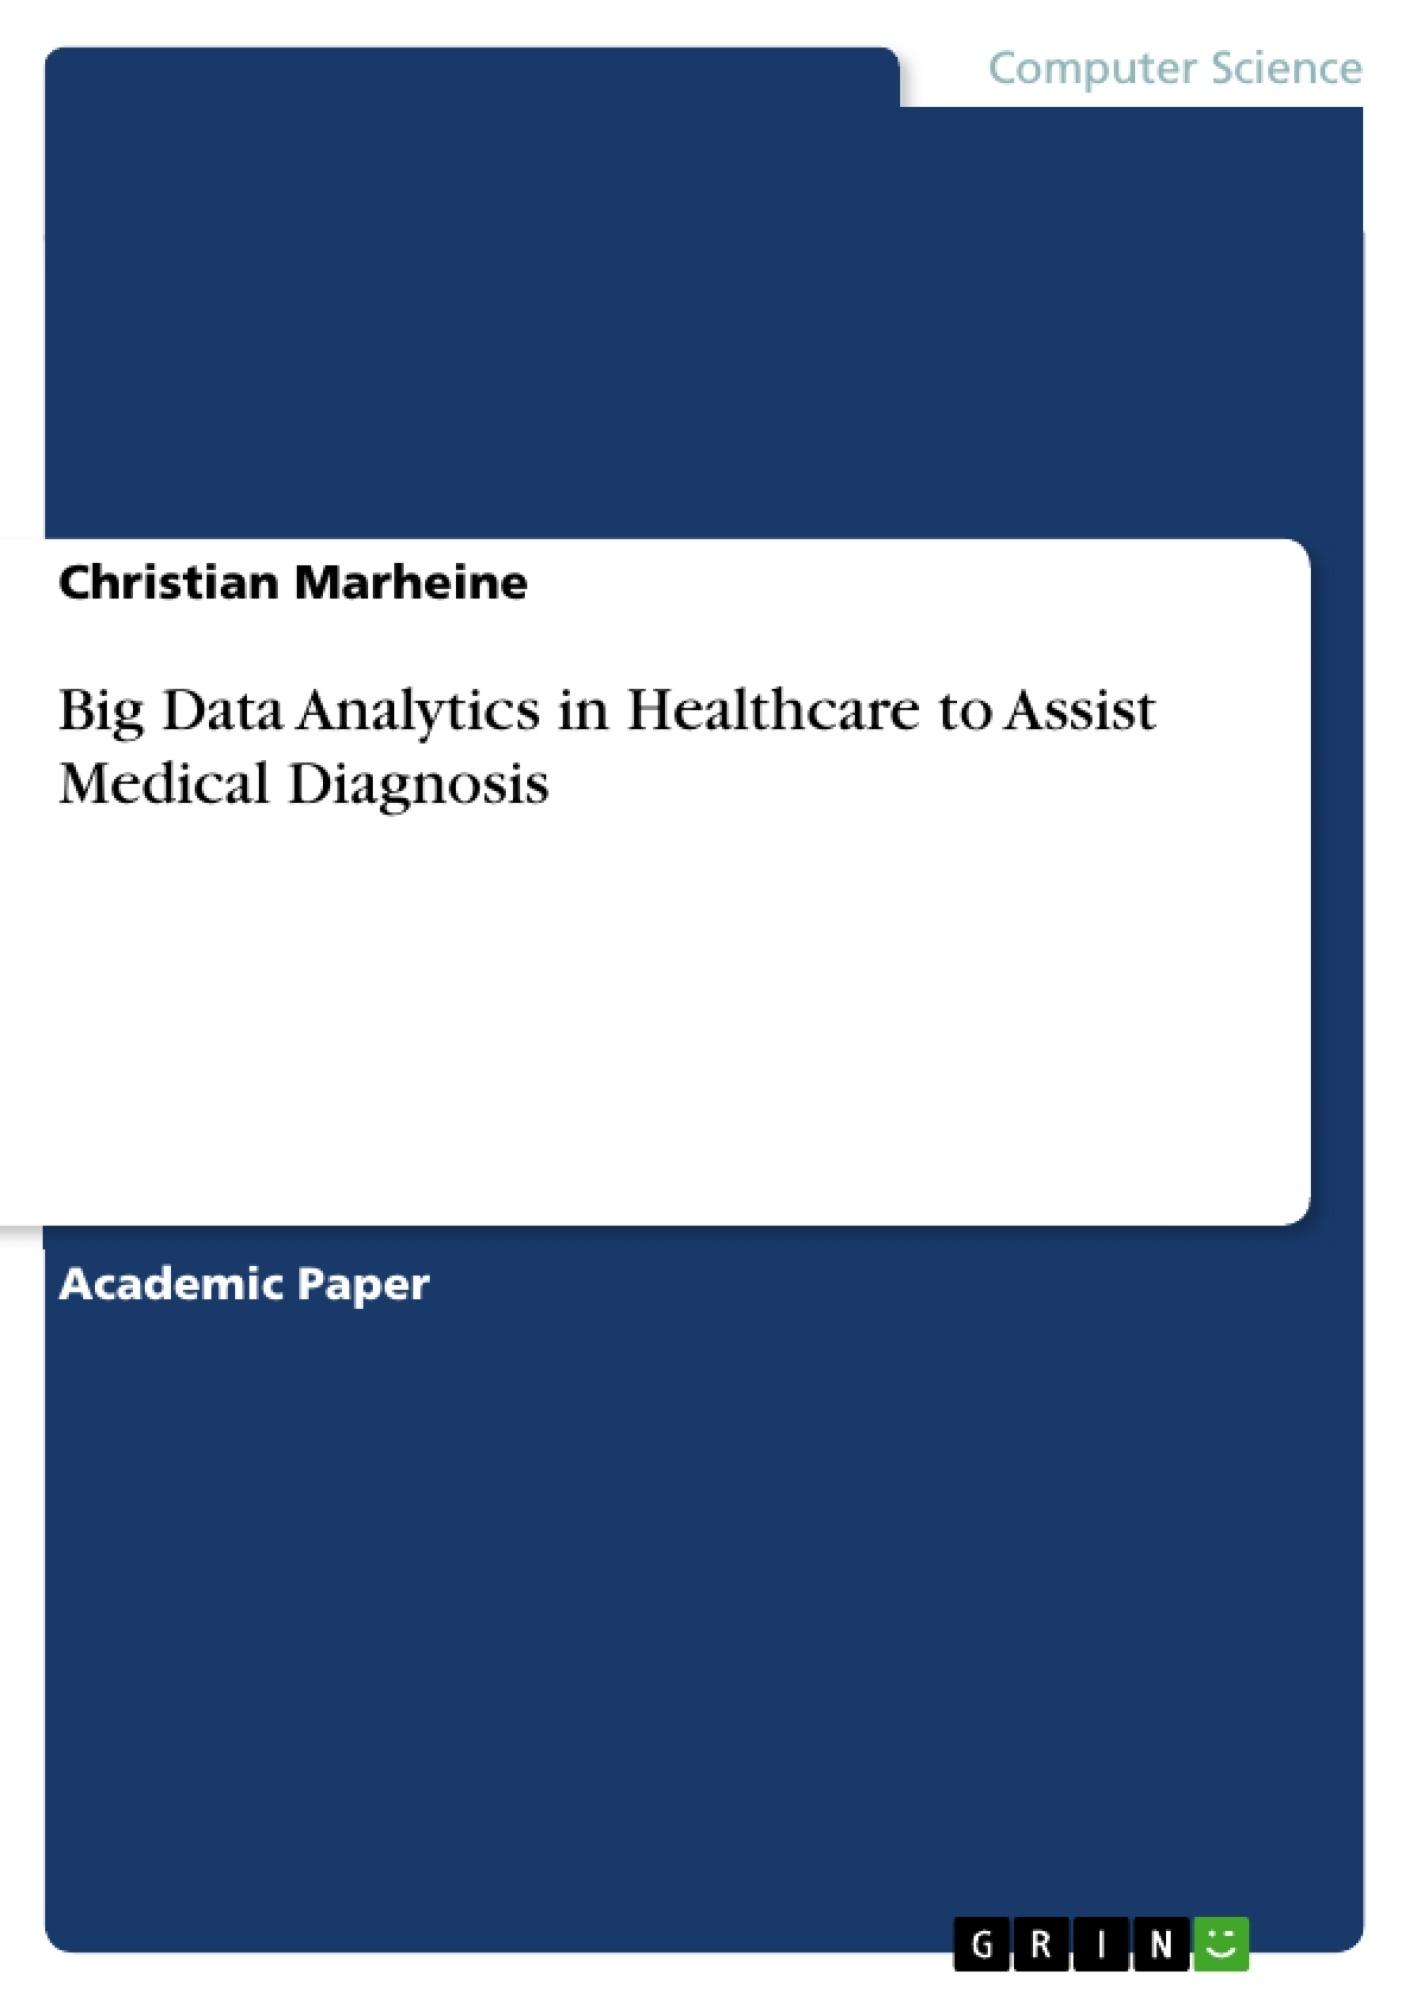 Title: Big Data Analytics in Healthcare to Assist Medical Diagnosis